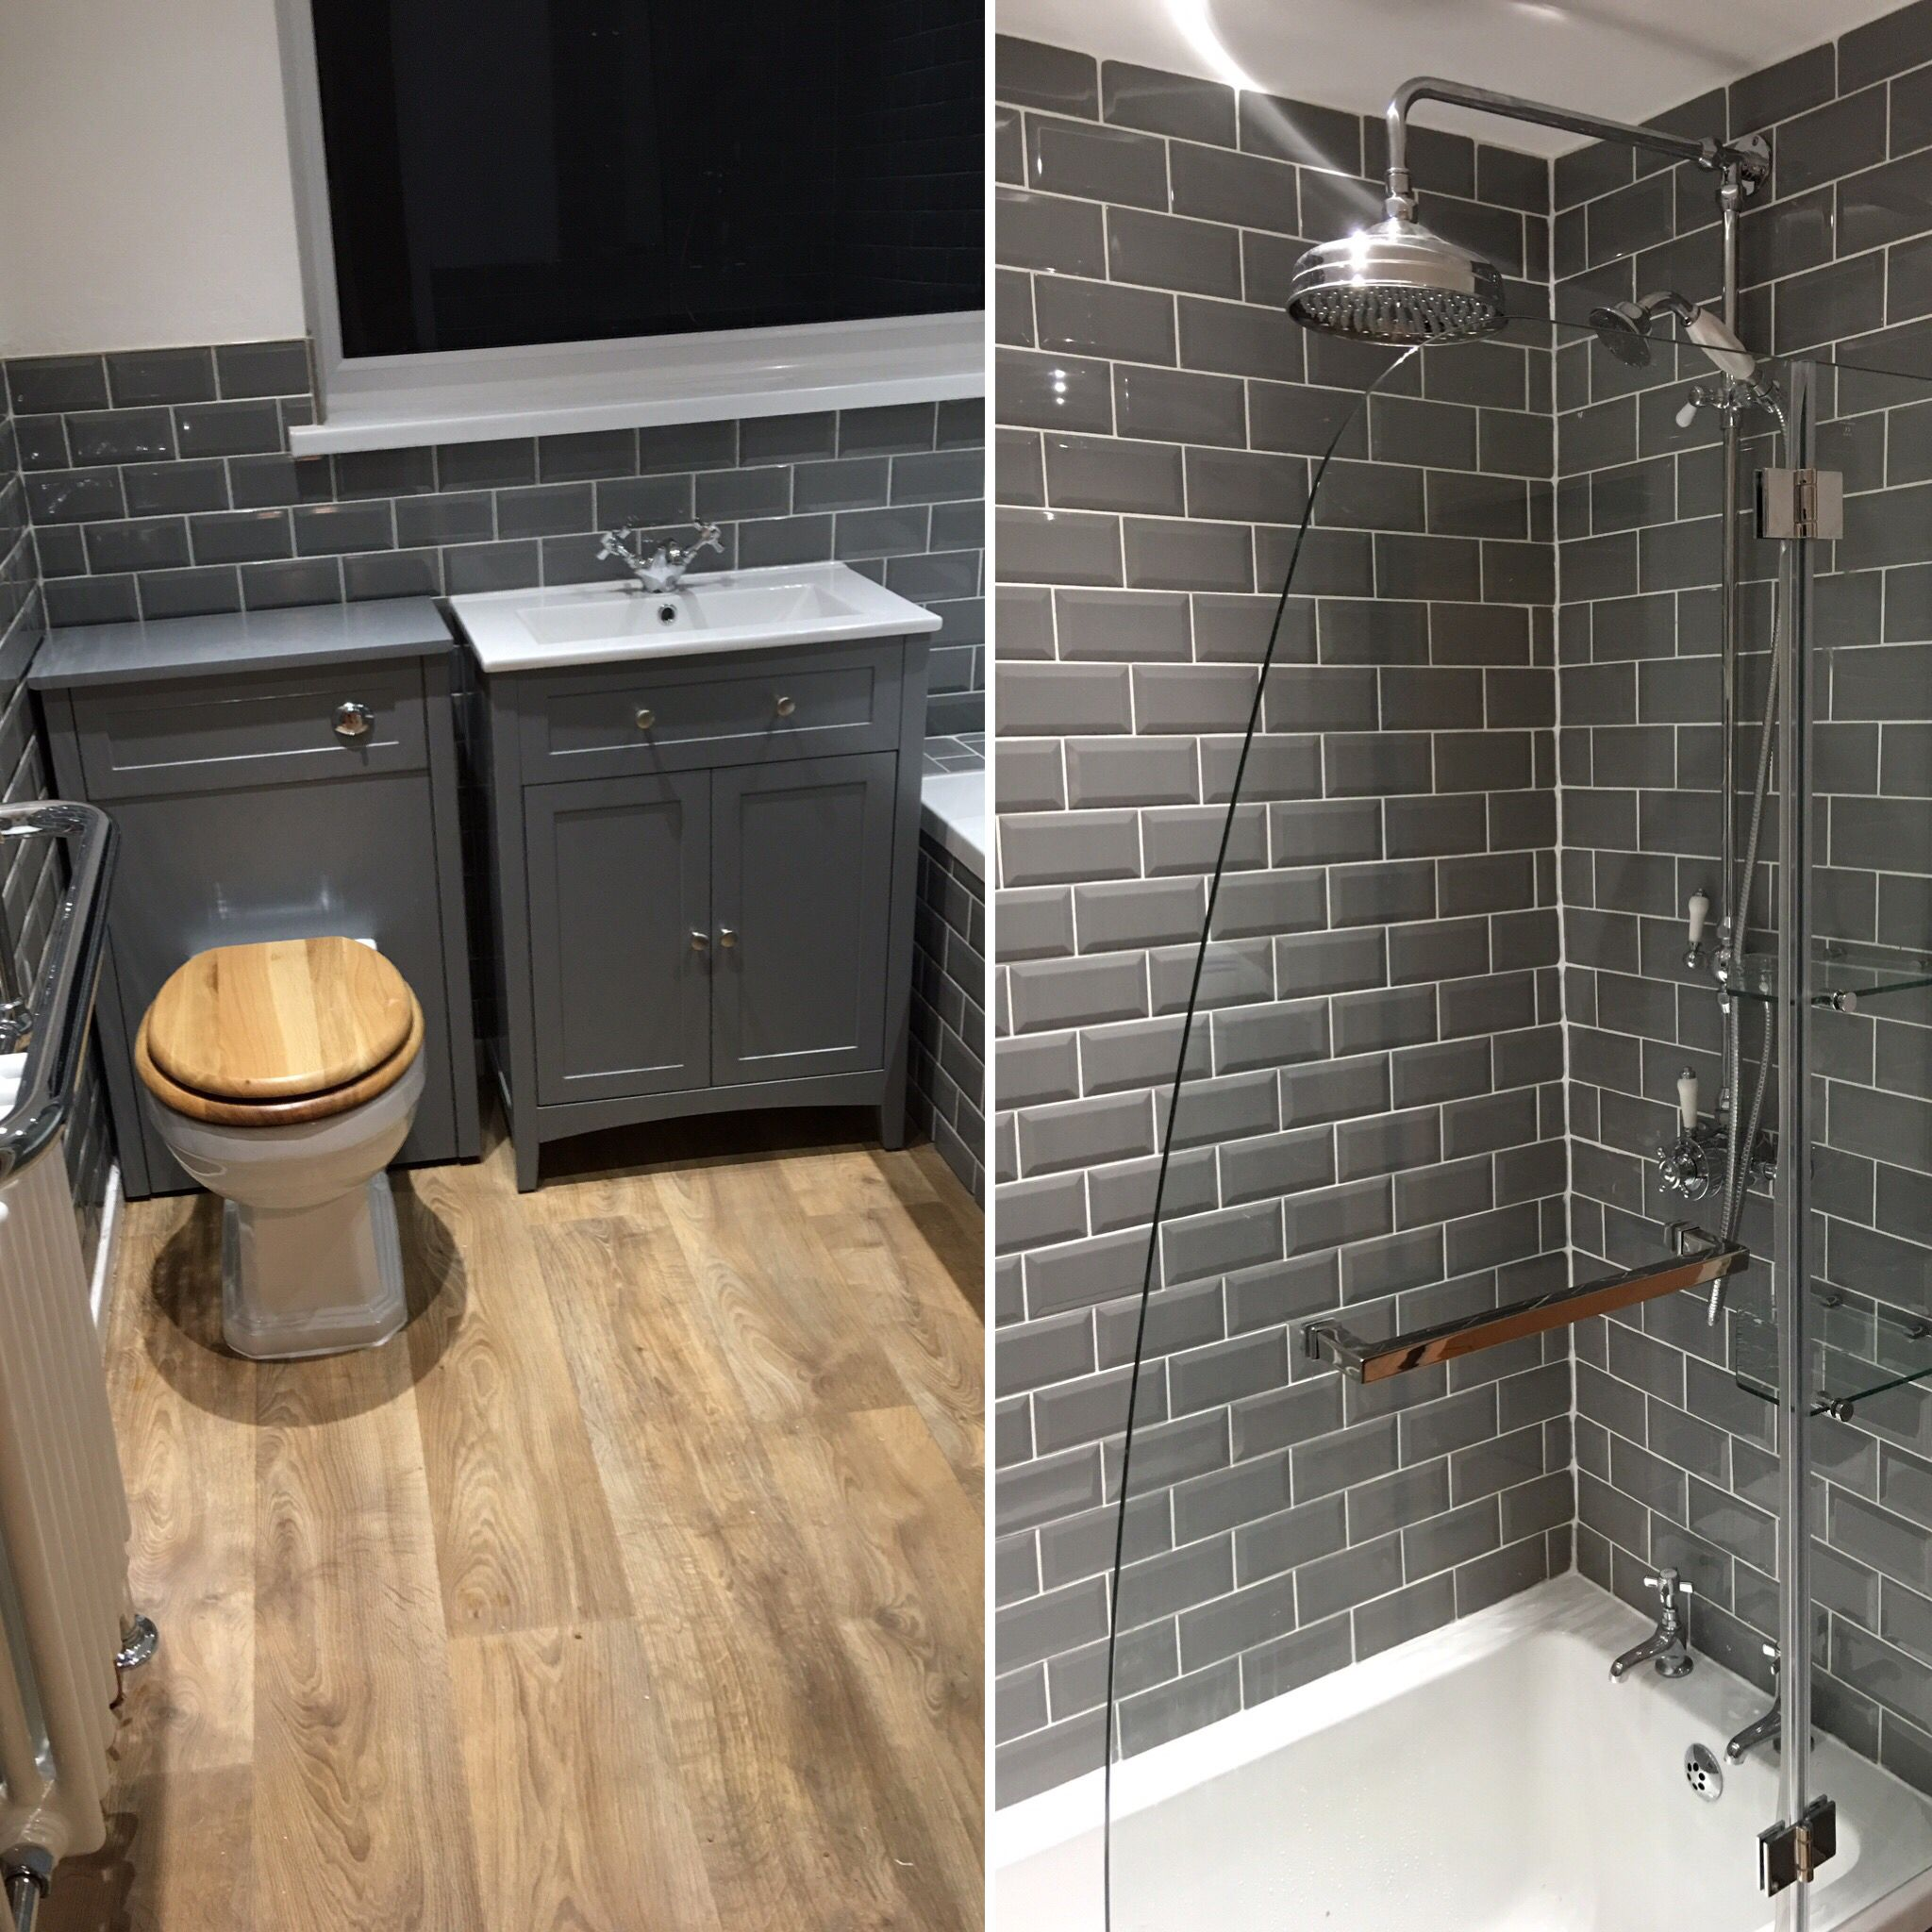 Grey Metro Tiles With Oak Flooring   But With A White Toilet And Vanity Unit